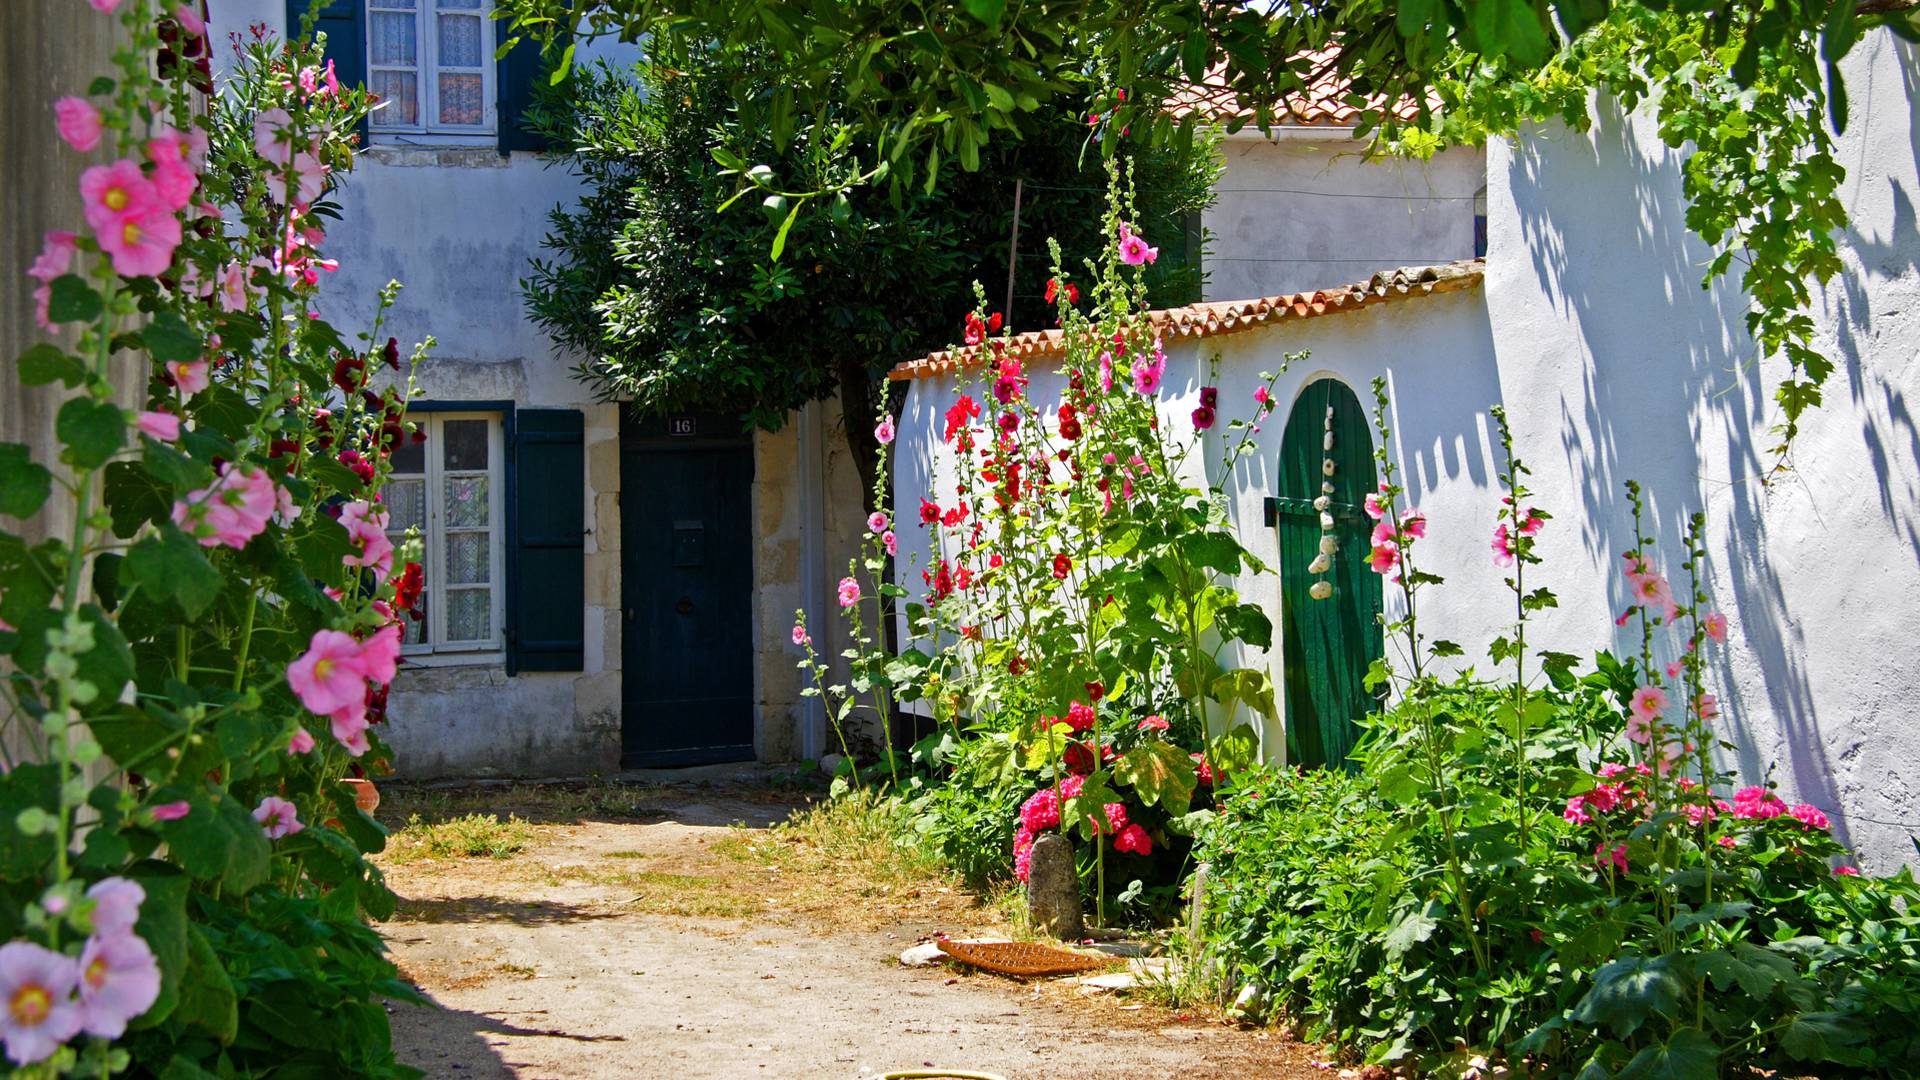 Village vacances rencontres ile de re